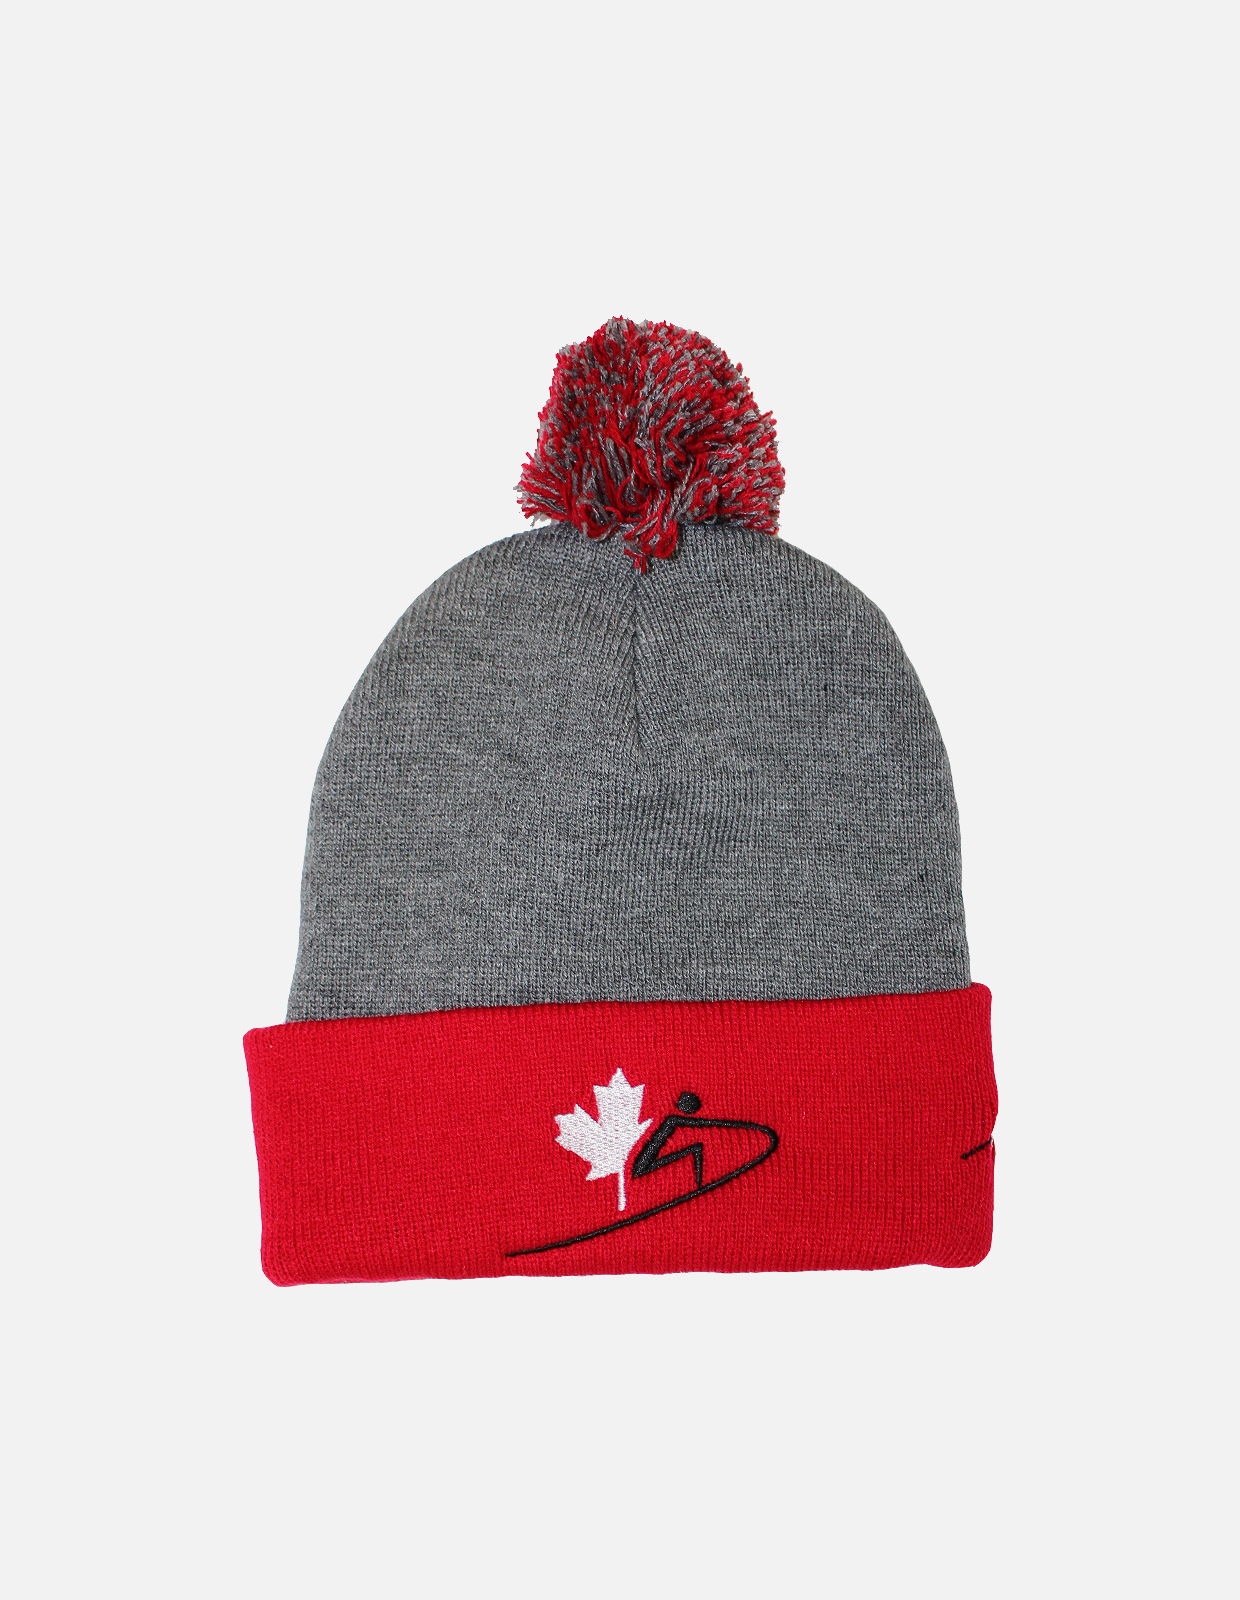 Cura pompom toque   red